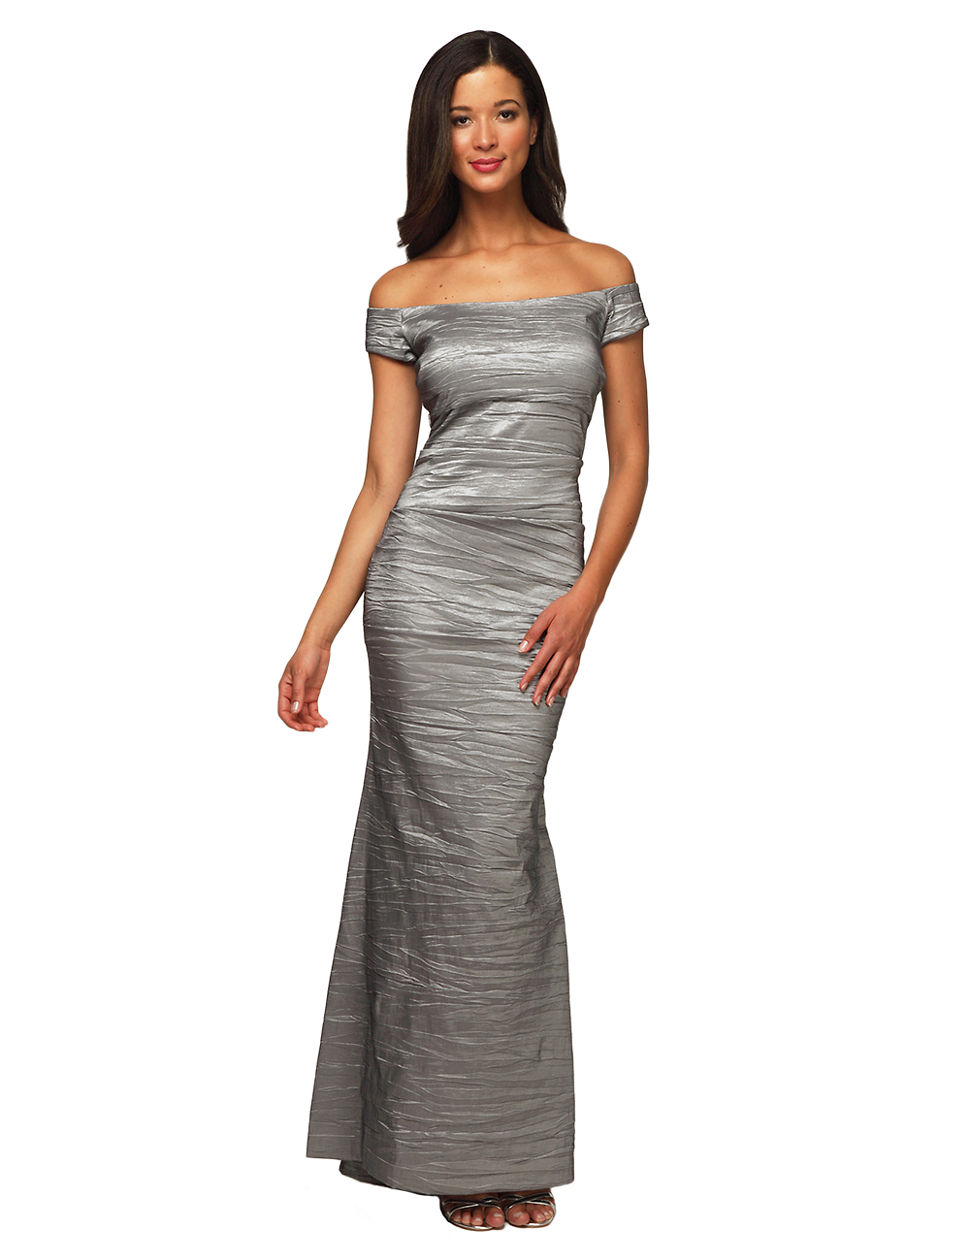 Lyst - Alex Evenings Long Off The Shoulder Stretch Taffeta Dress in Gray